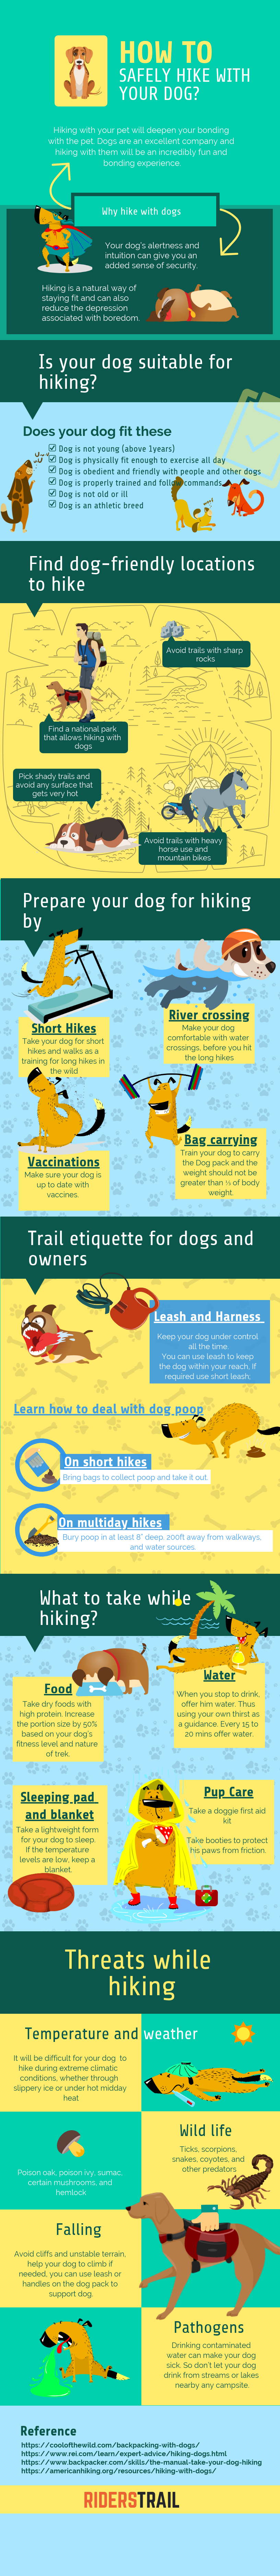 How to hike safely with your dog